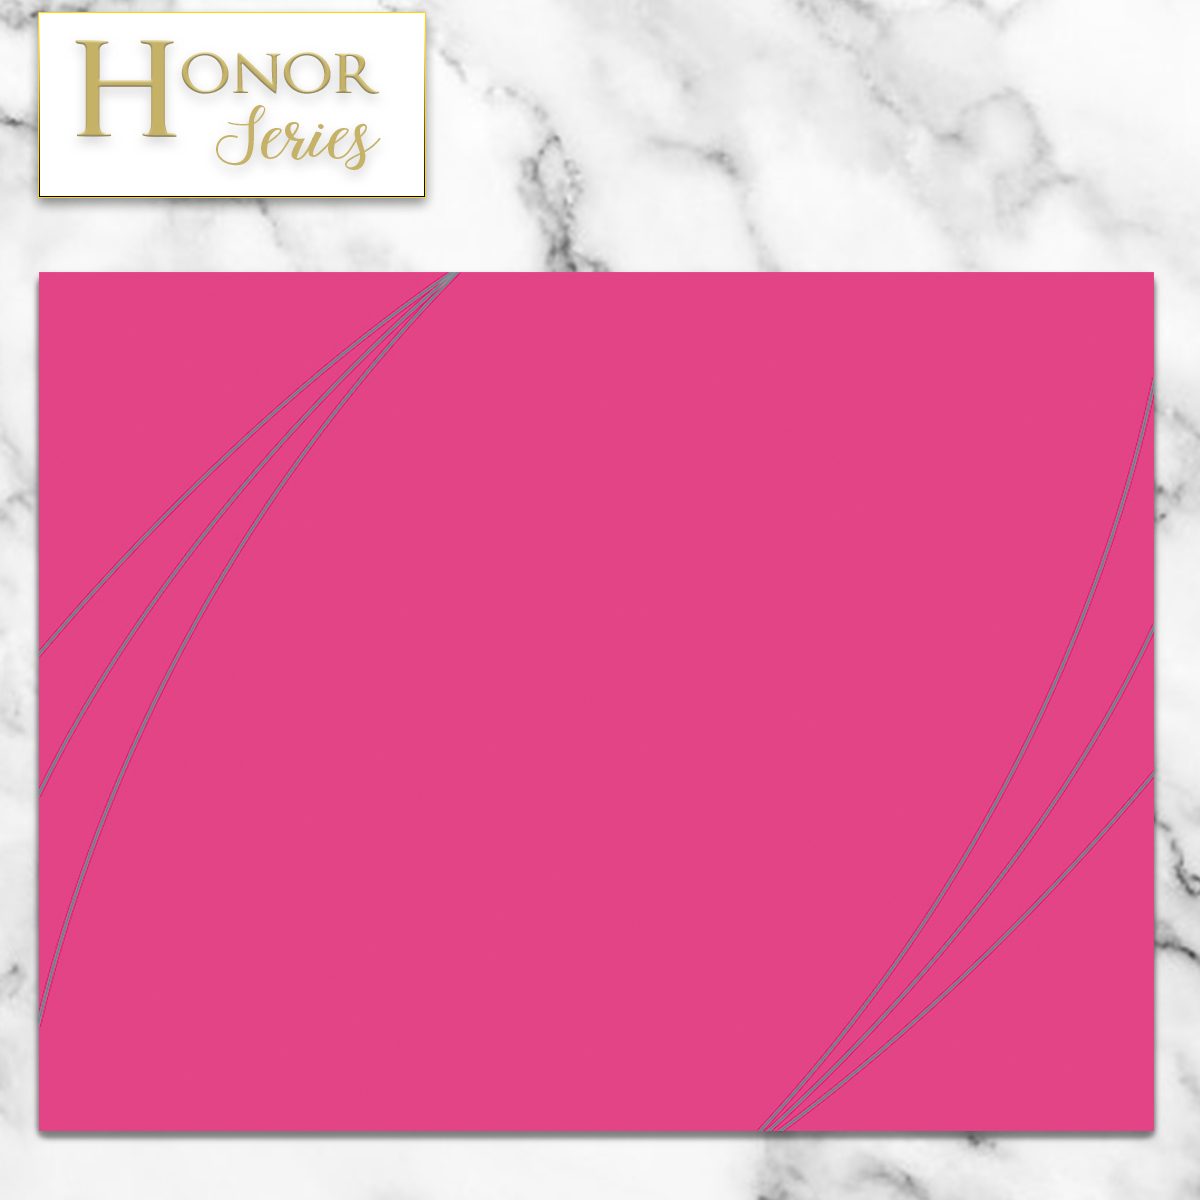 Honor Series - Petal Touch Pink Cover - 5 Count